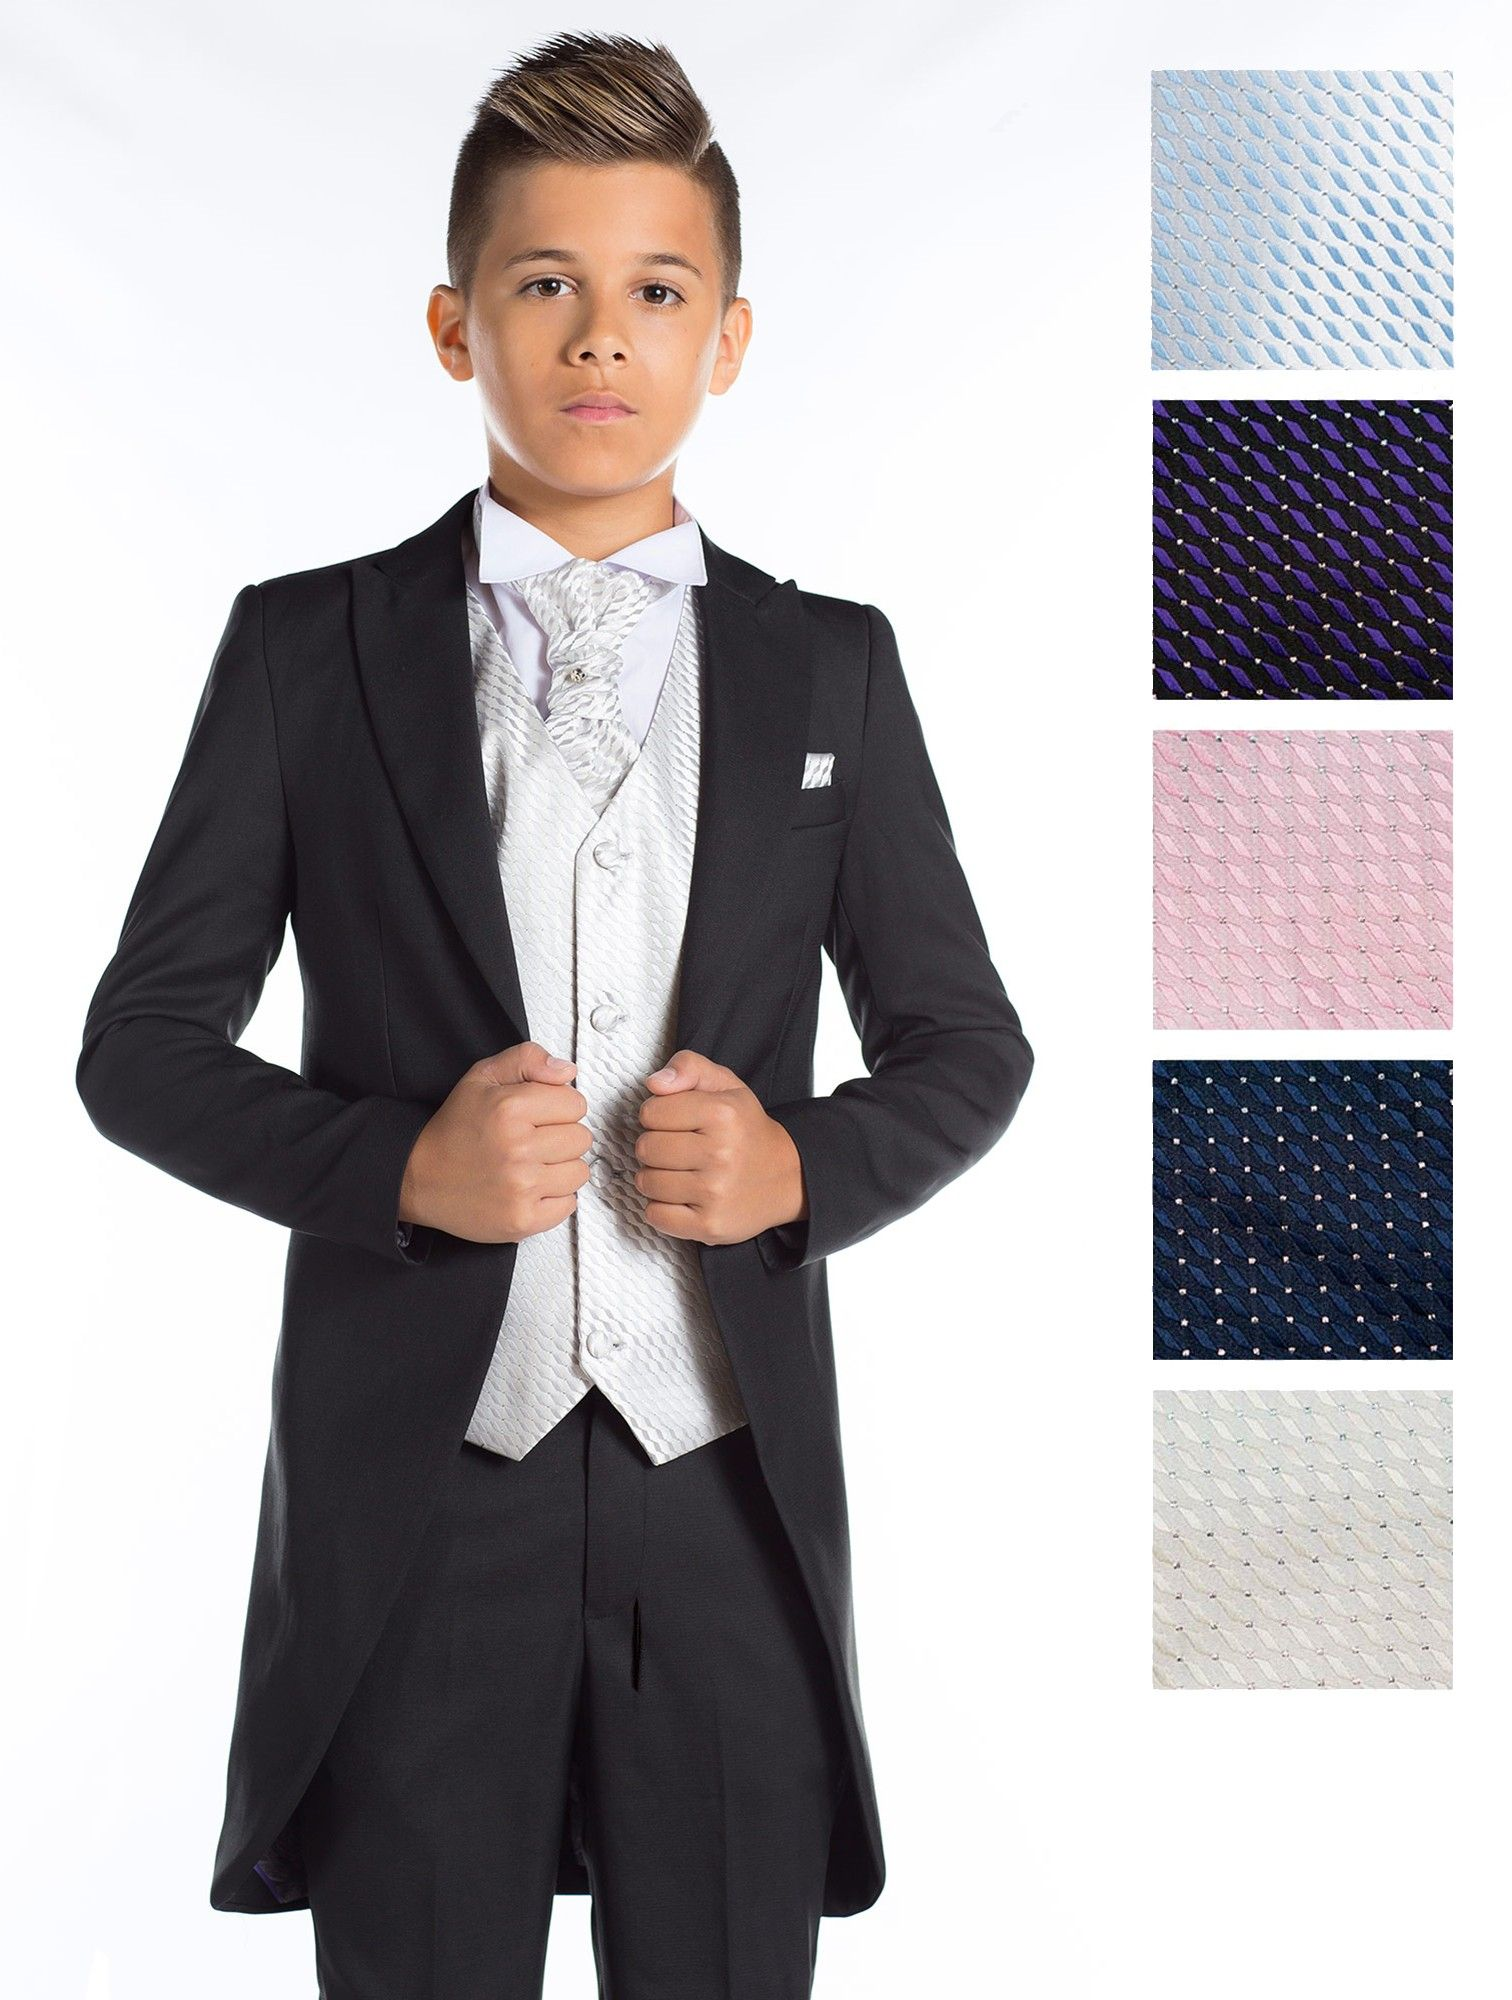 46.99 boys black tail suit   Boys morning suits   Page boy outfits ...